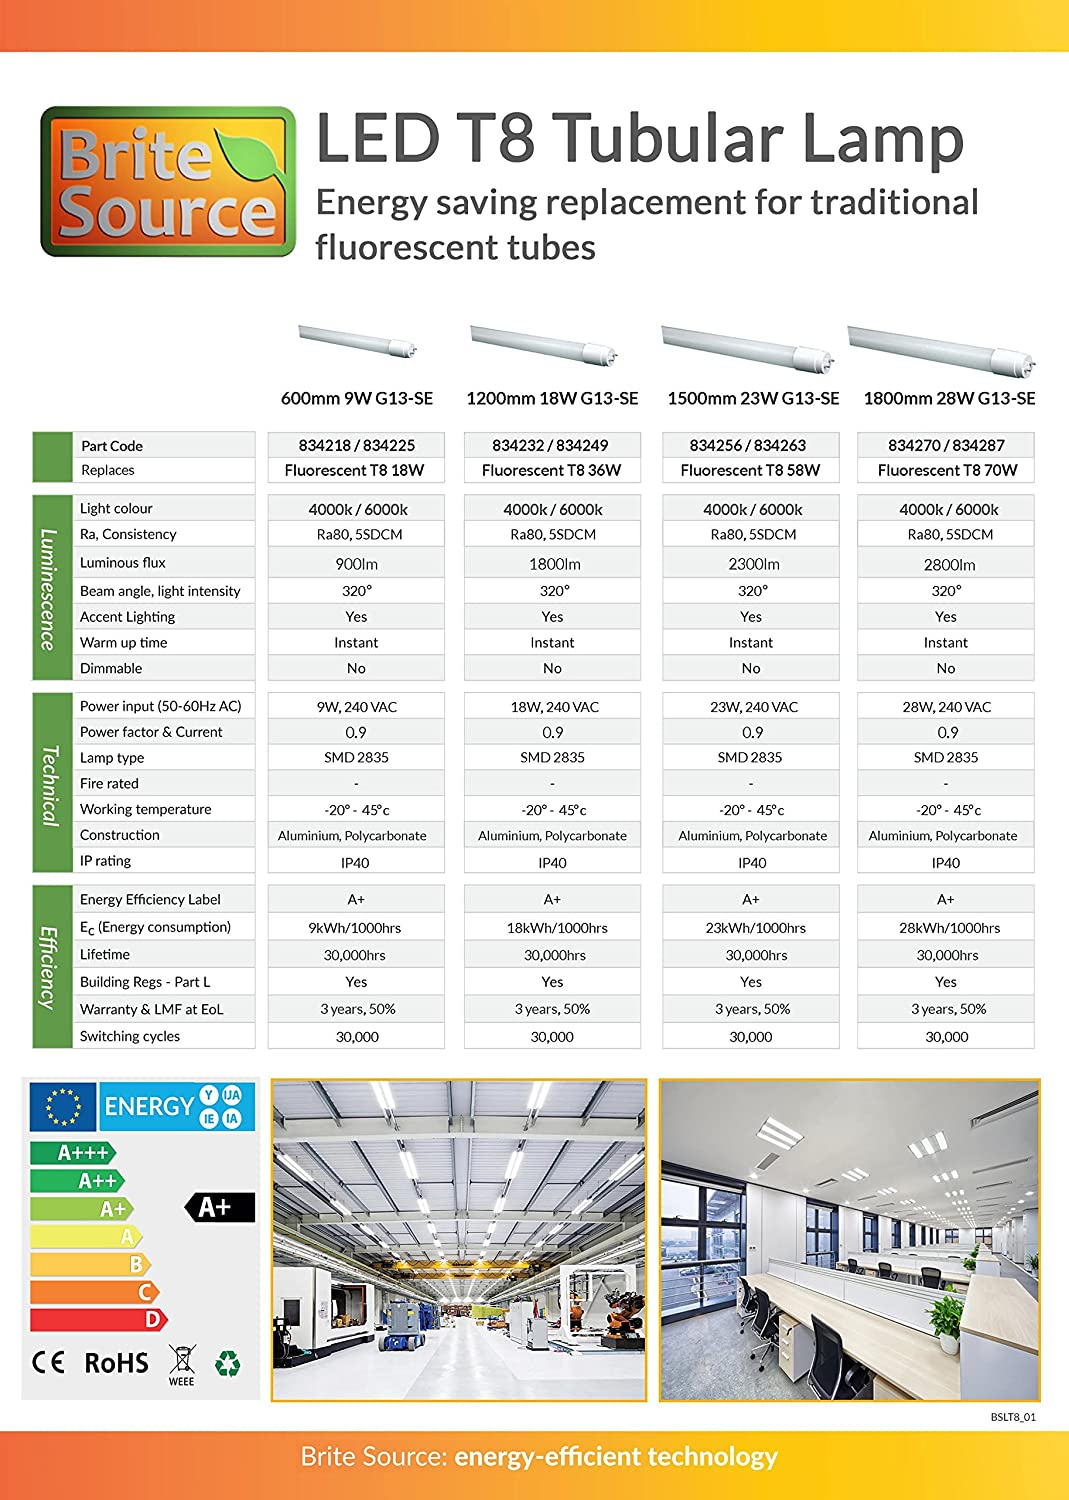 2 X Brite Source Led T8 Fluorescent Tube Replacements 6000k 1500mm Light Circuit Diagram Buy Daylight 6ft 28w 1800mm 70w Replacement Kitchen Home